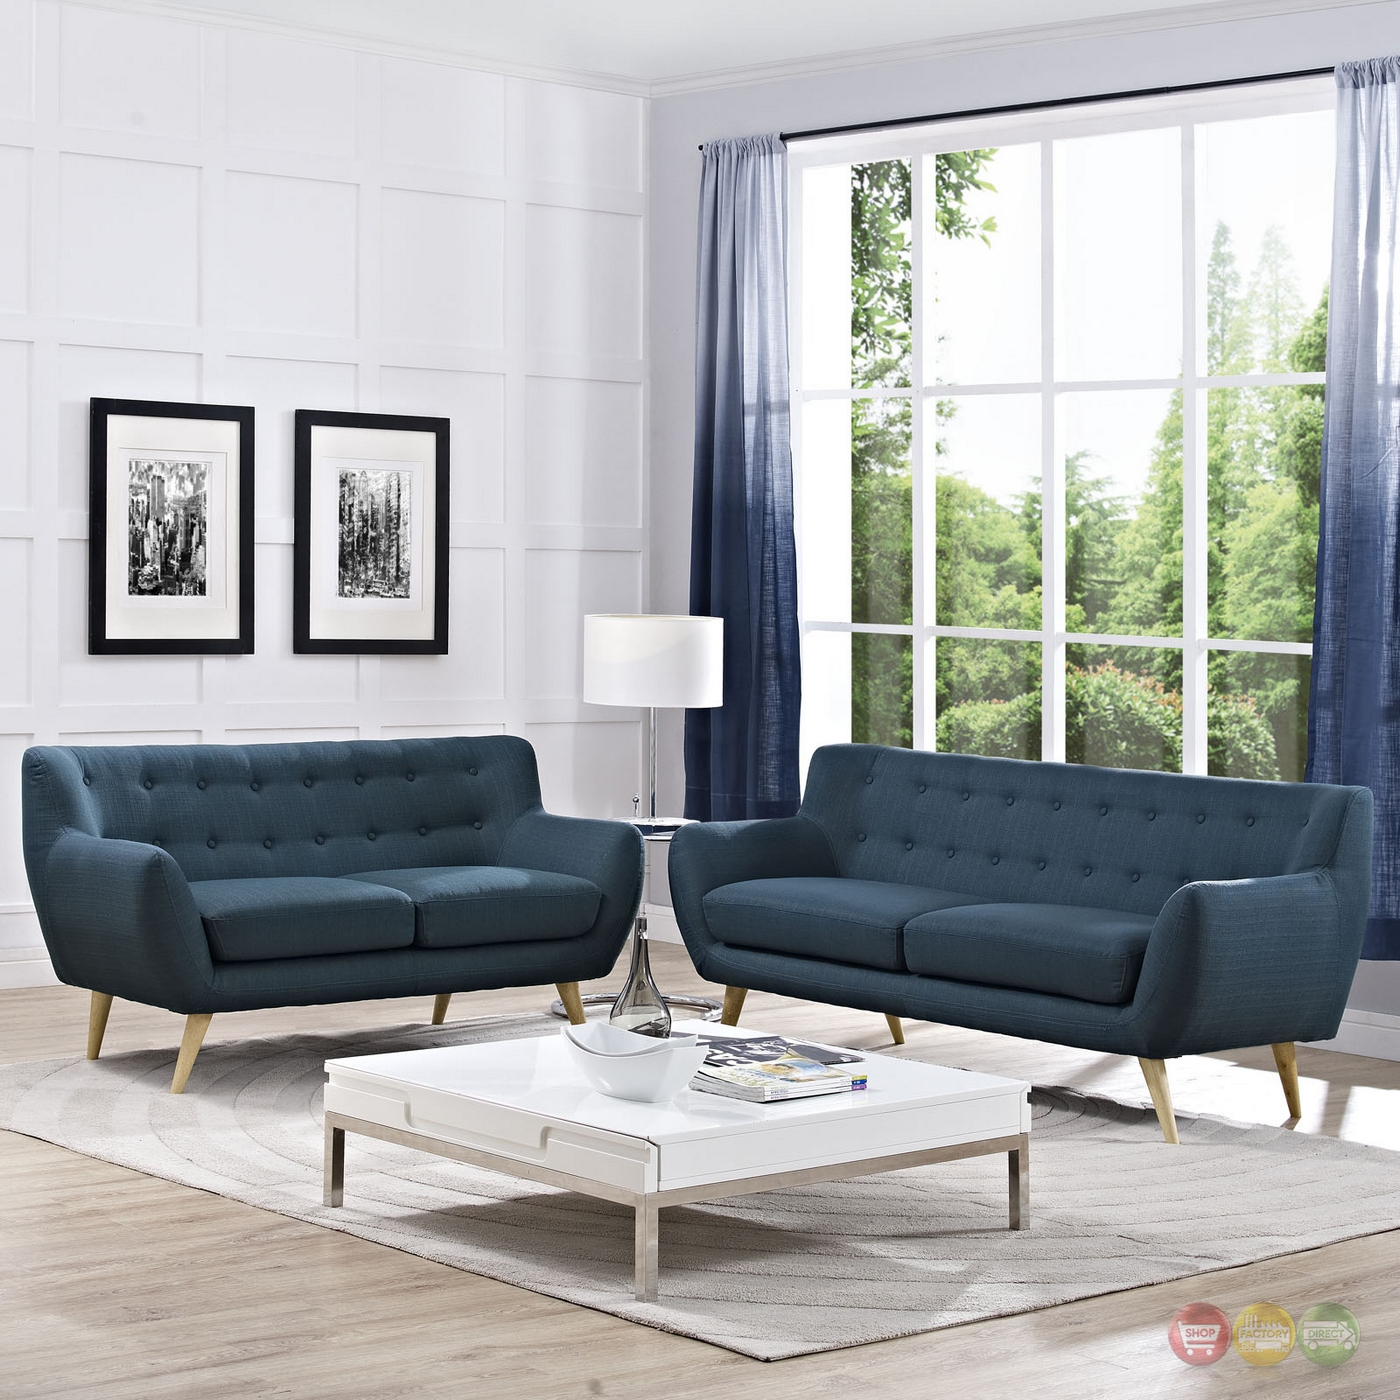 Remark Modern 2pc Button Tufted Upholstered Living Room Set Azure